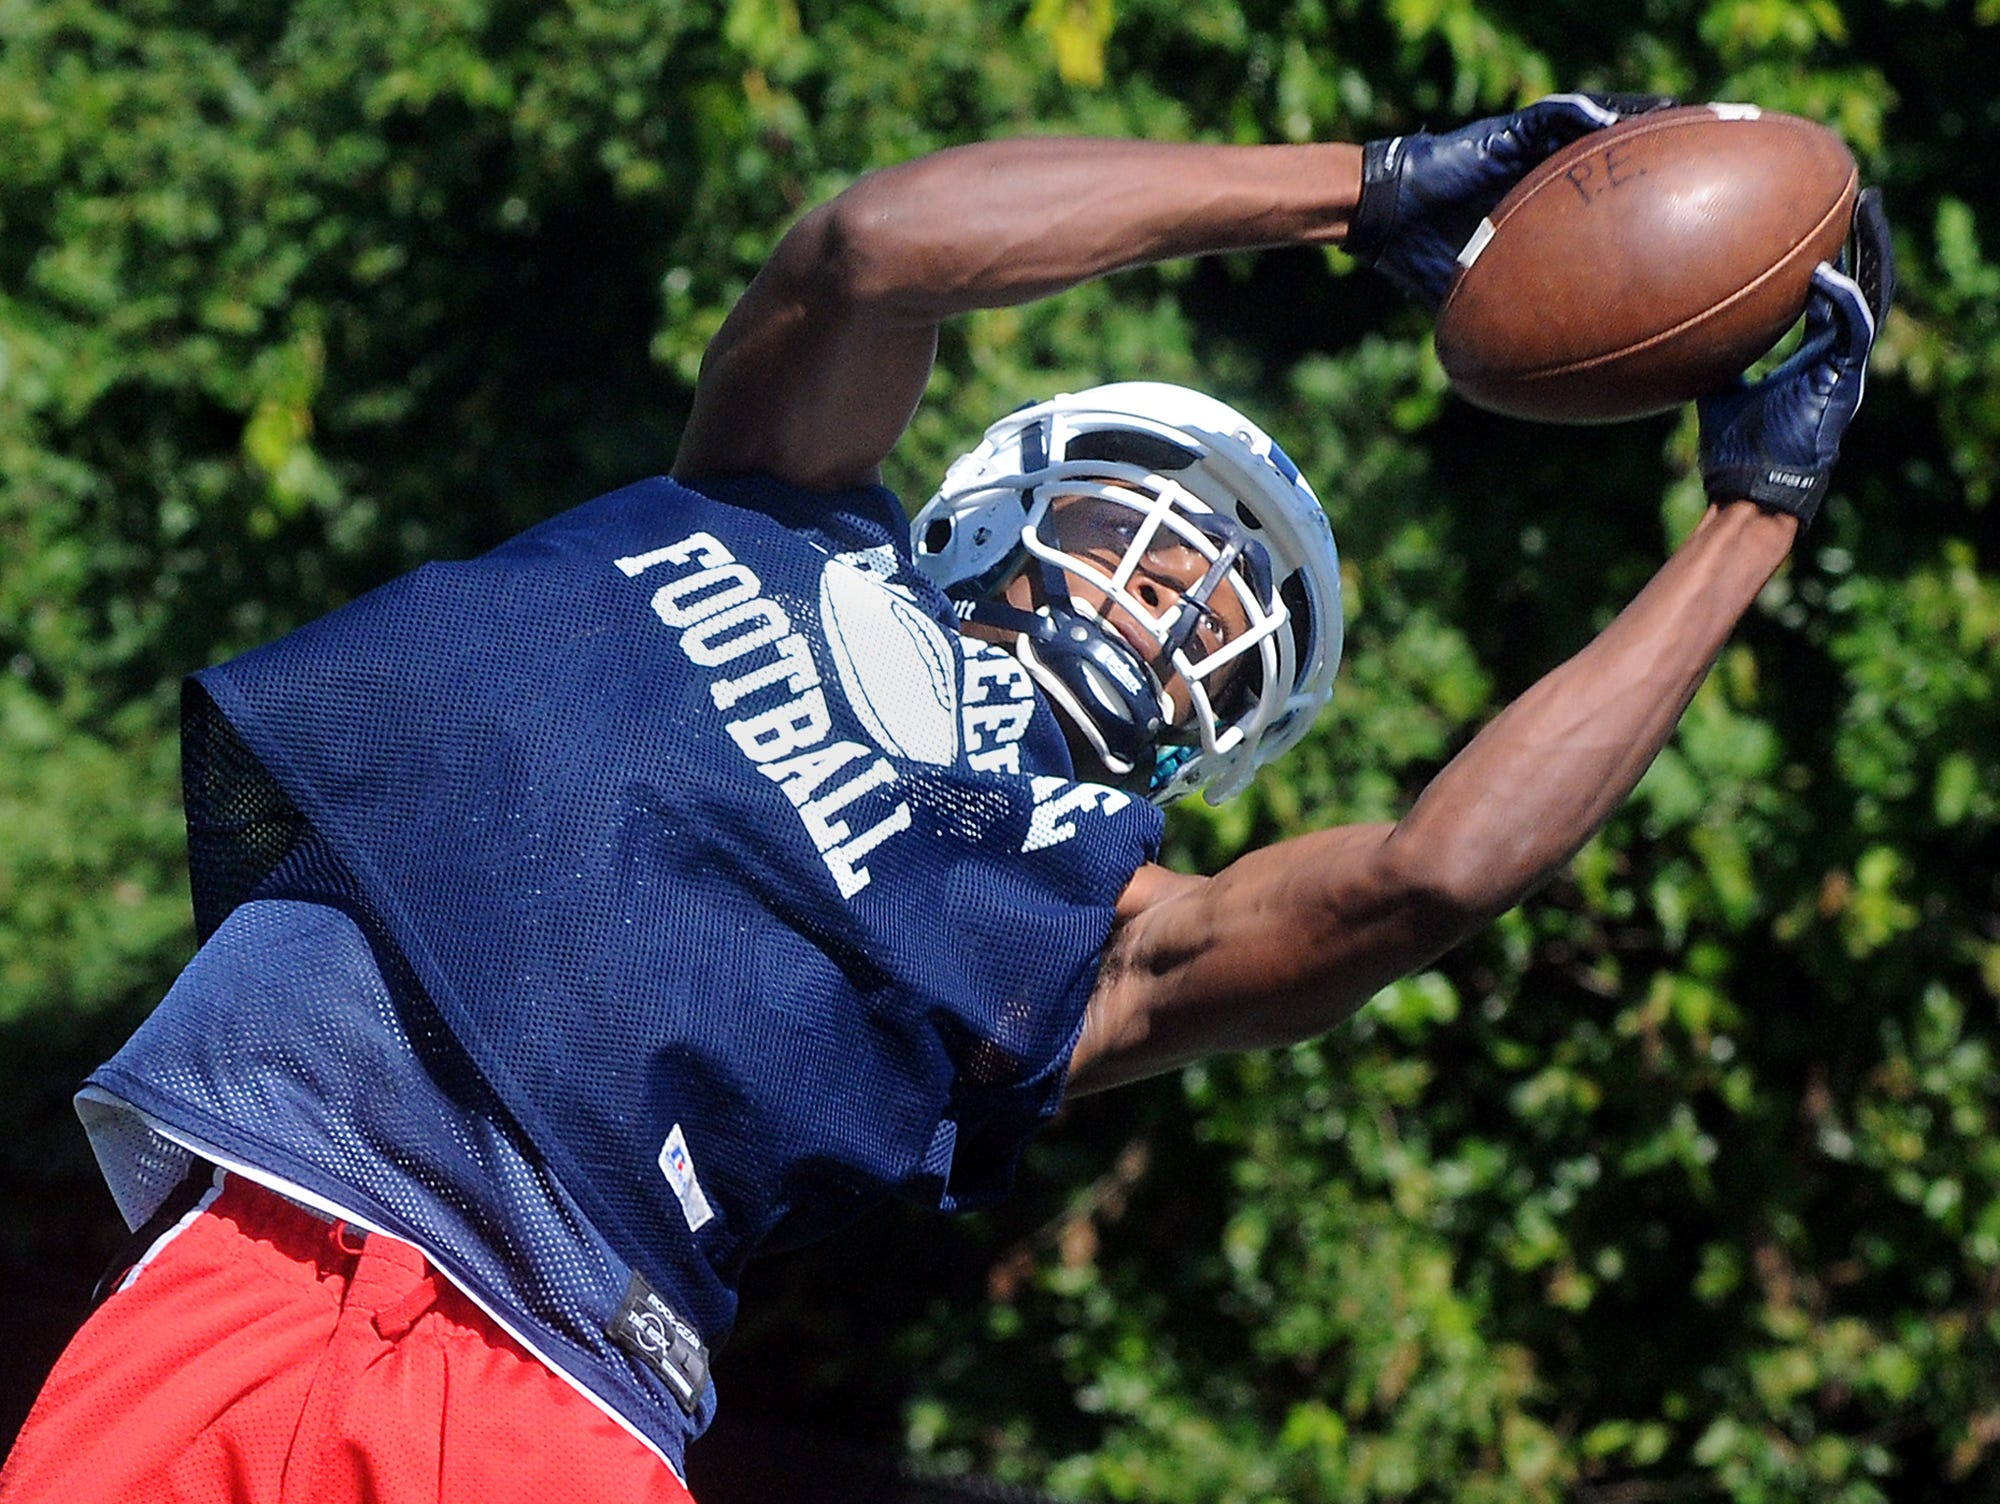 Poughkeepsie High School junior wide receiver Jovan Atkinson goes high in the air to make a catch during his team's second day of football practice on Tuesday. The Pioneers will be playing in Section 9 this season but say they will still play their game.